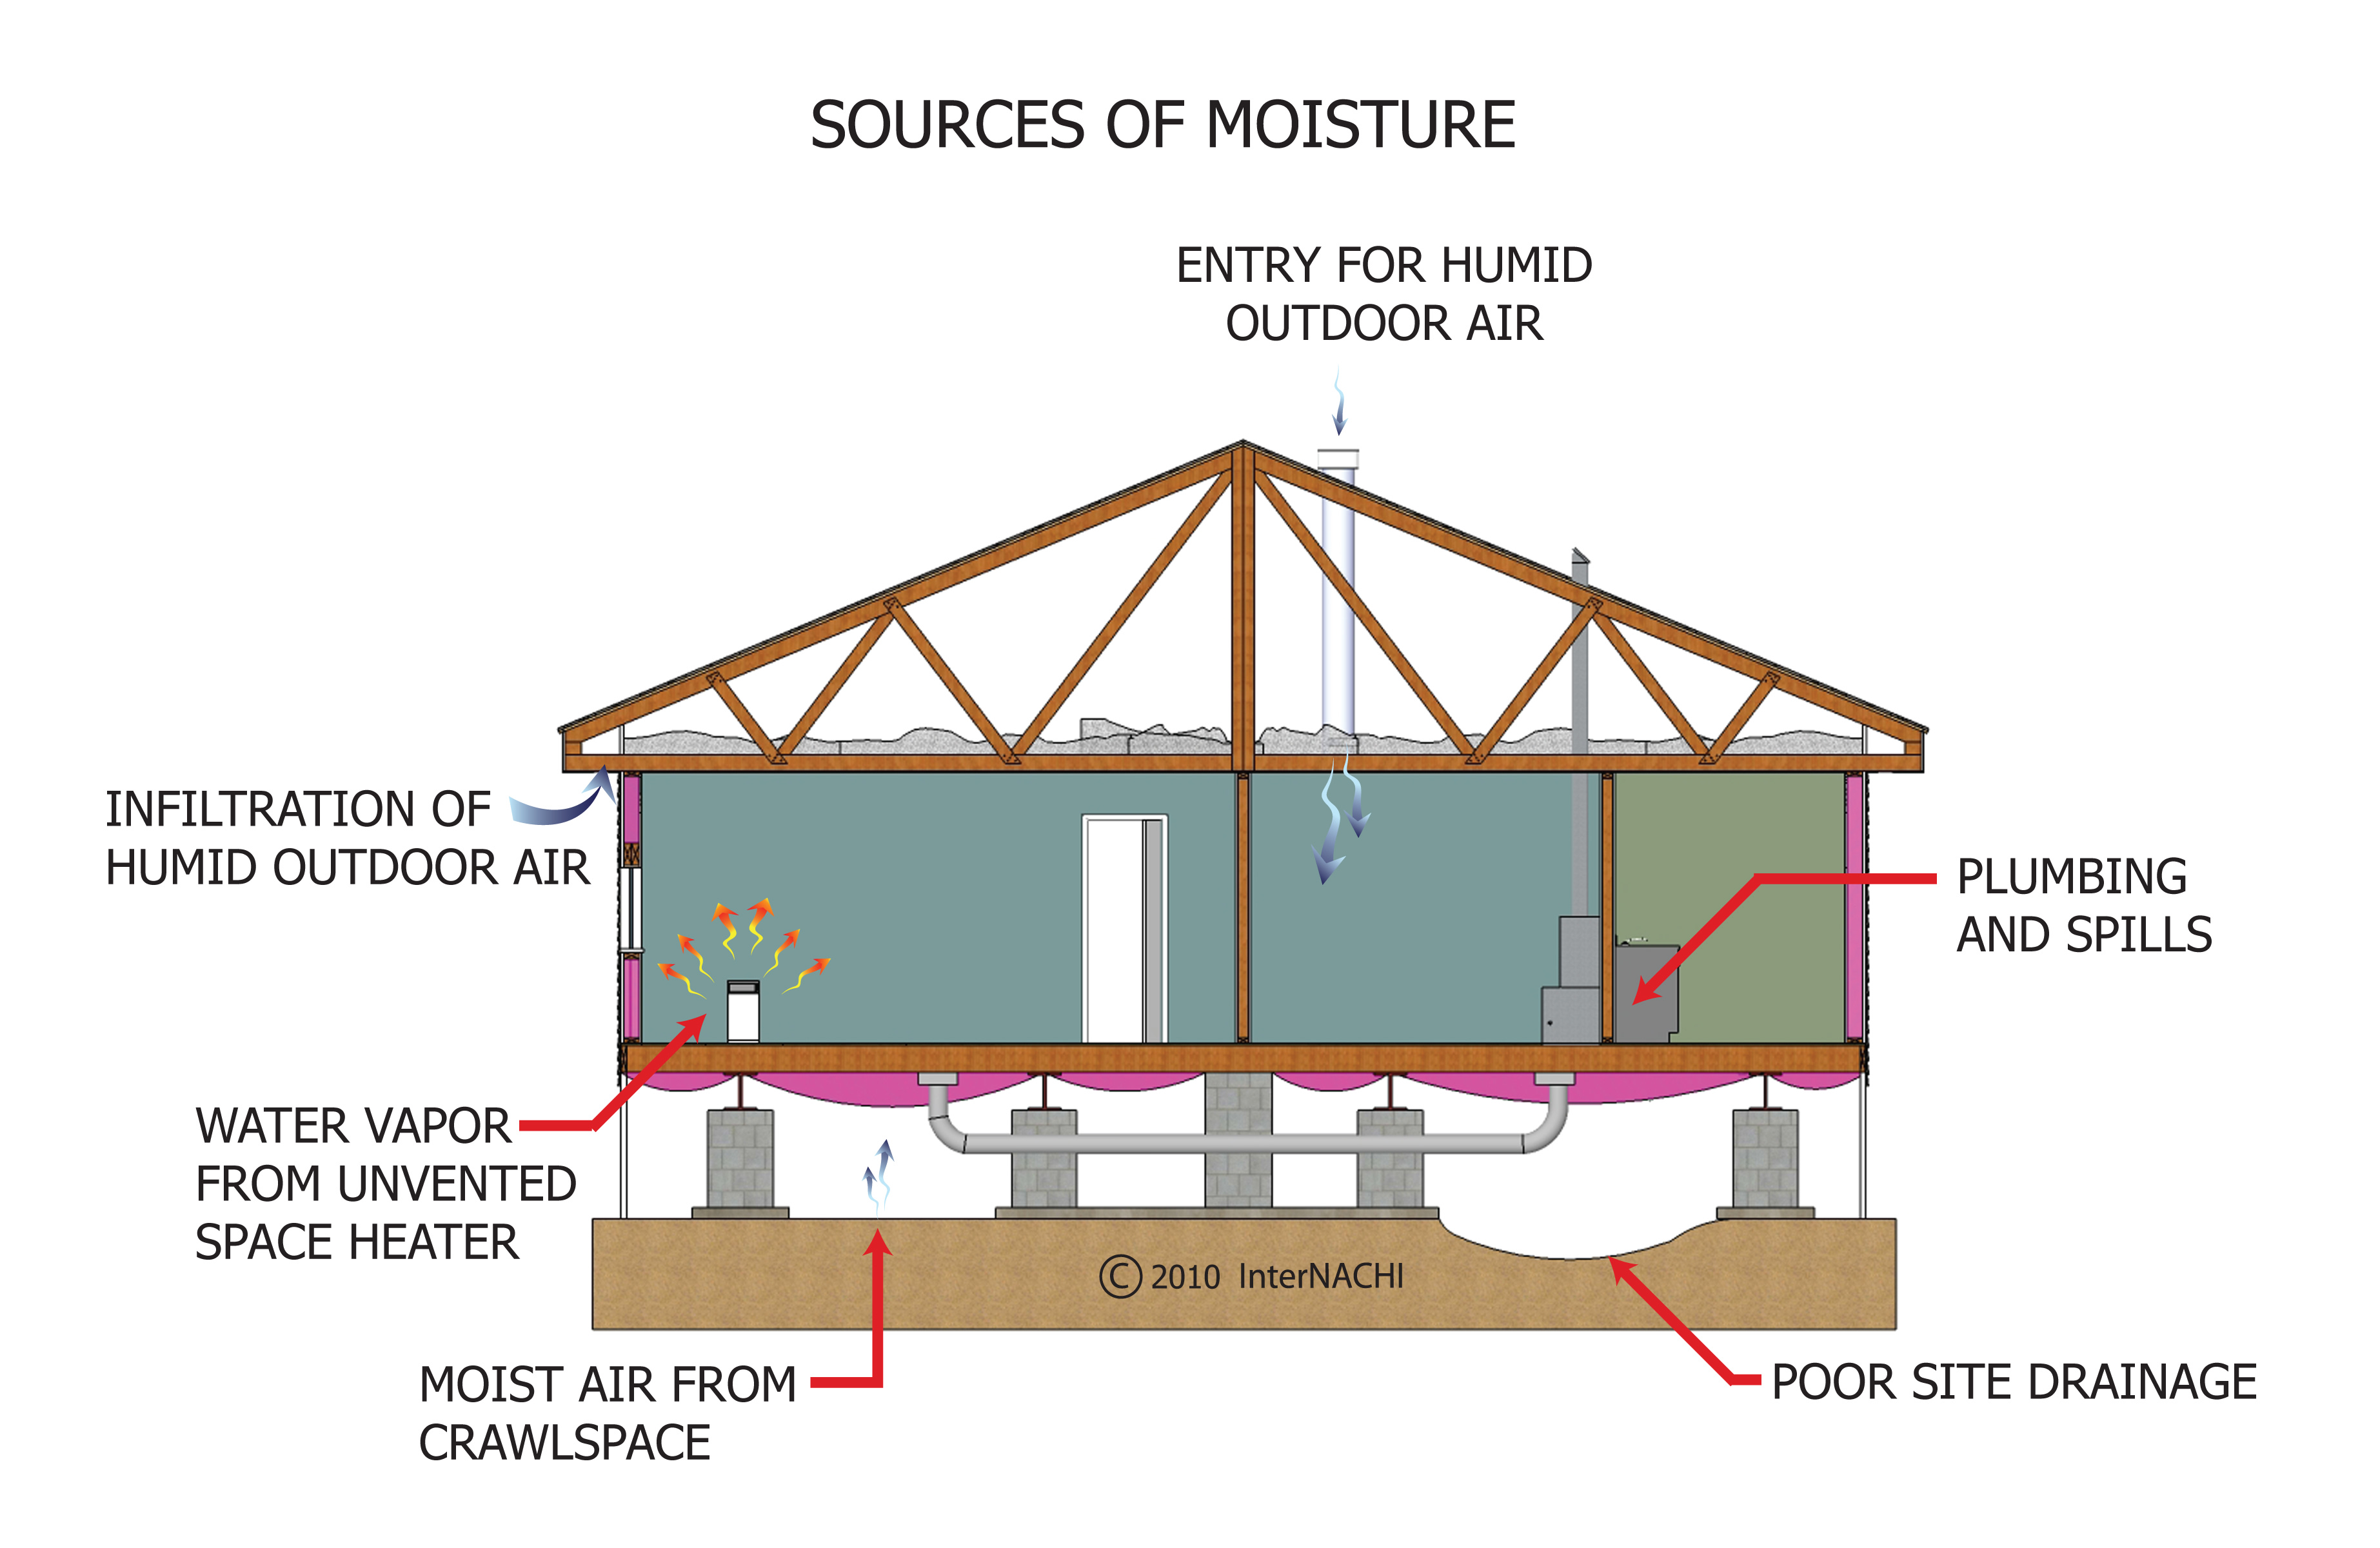 Sources of moisture.